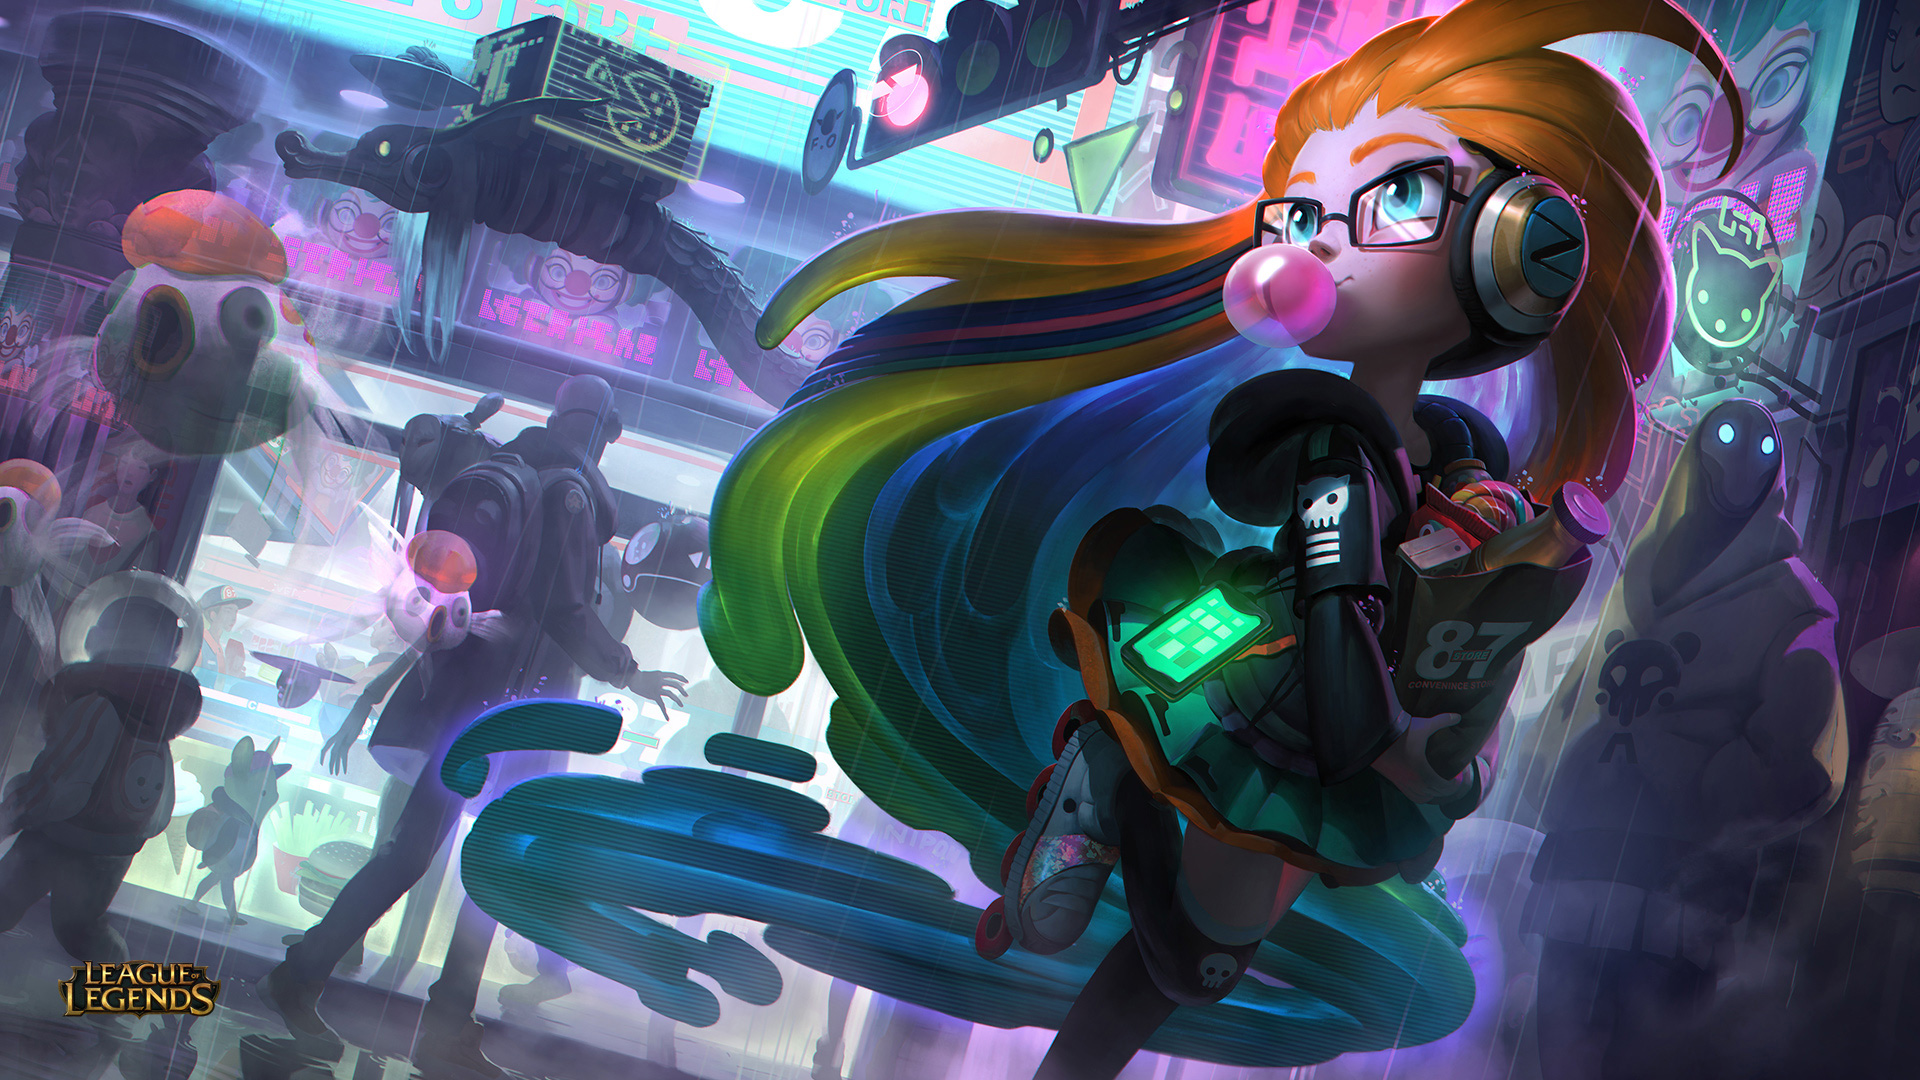 League Of Legends Desktop Wallpaper Hd Posted By Sarah Sellers